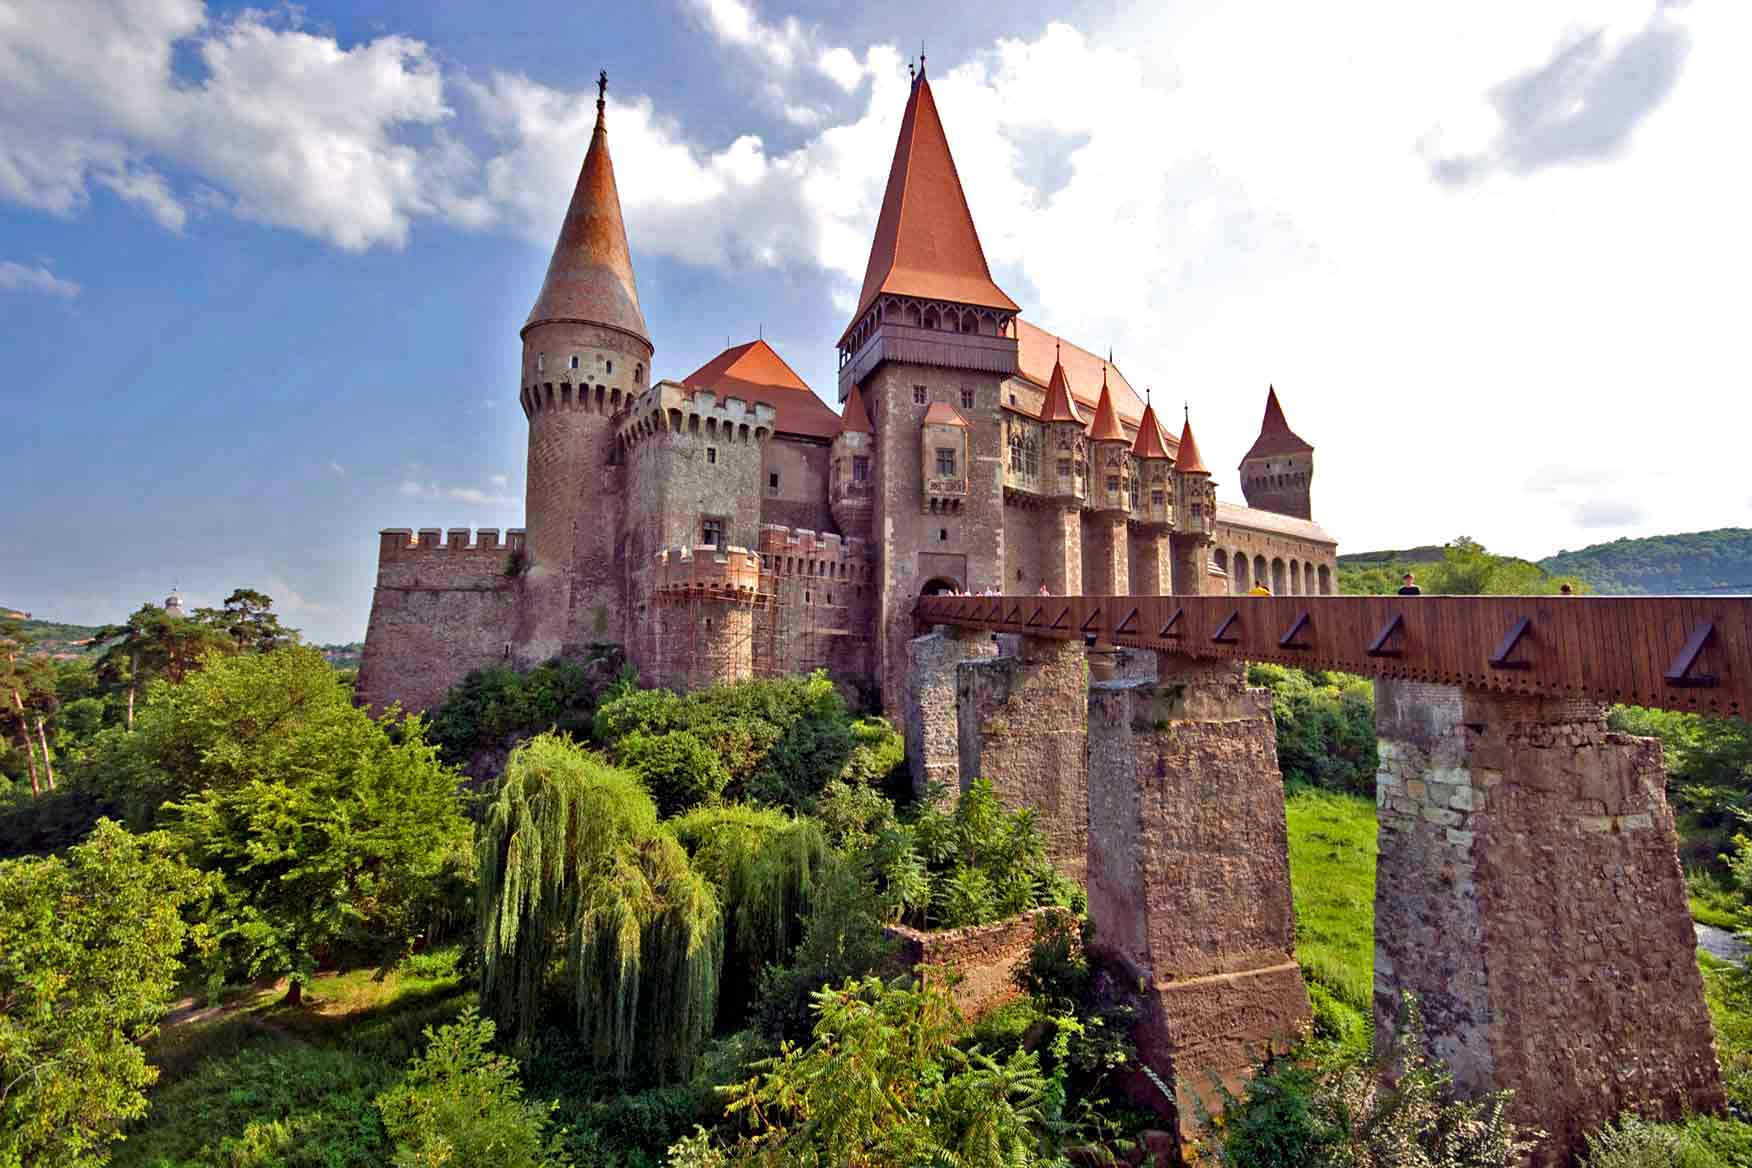 fortified churches transylvania castles in romania culture trip